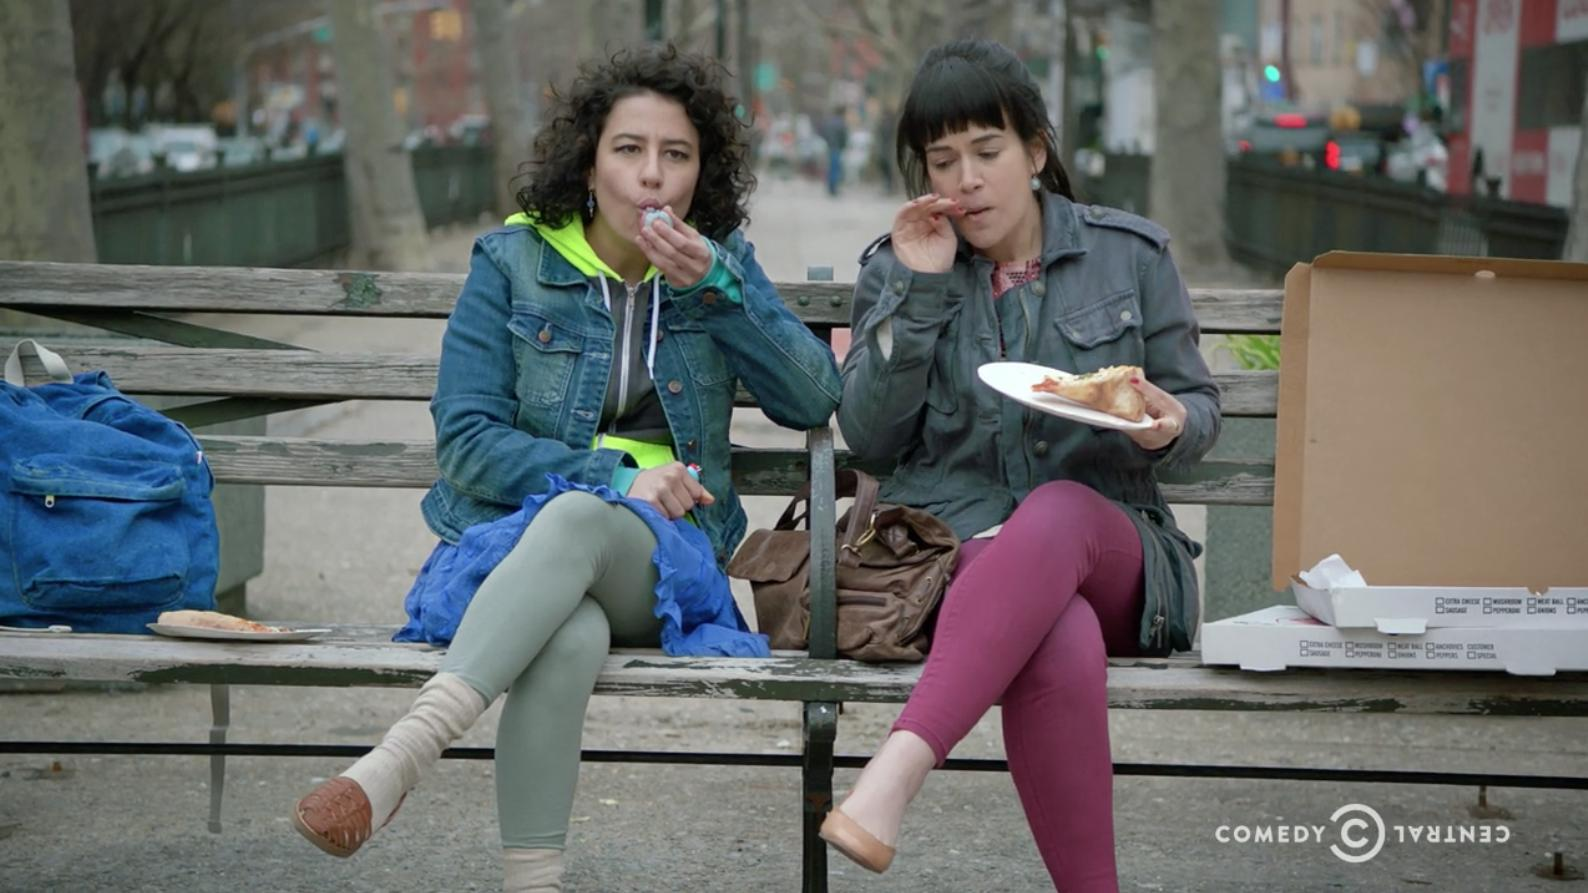 Learn how Abbi and Ilana originally met in the 'Broad City' season premiere: https://t.co/r2BvzFcmfV https://t.co/ylnoviRXpd